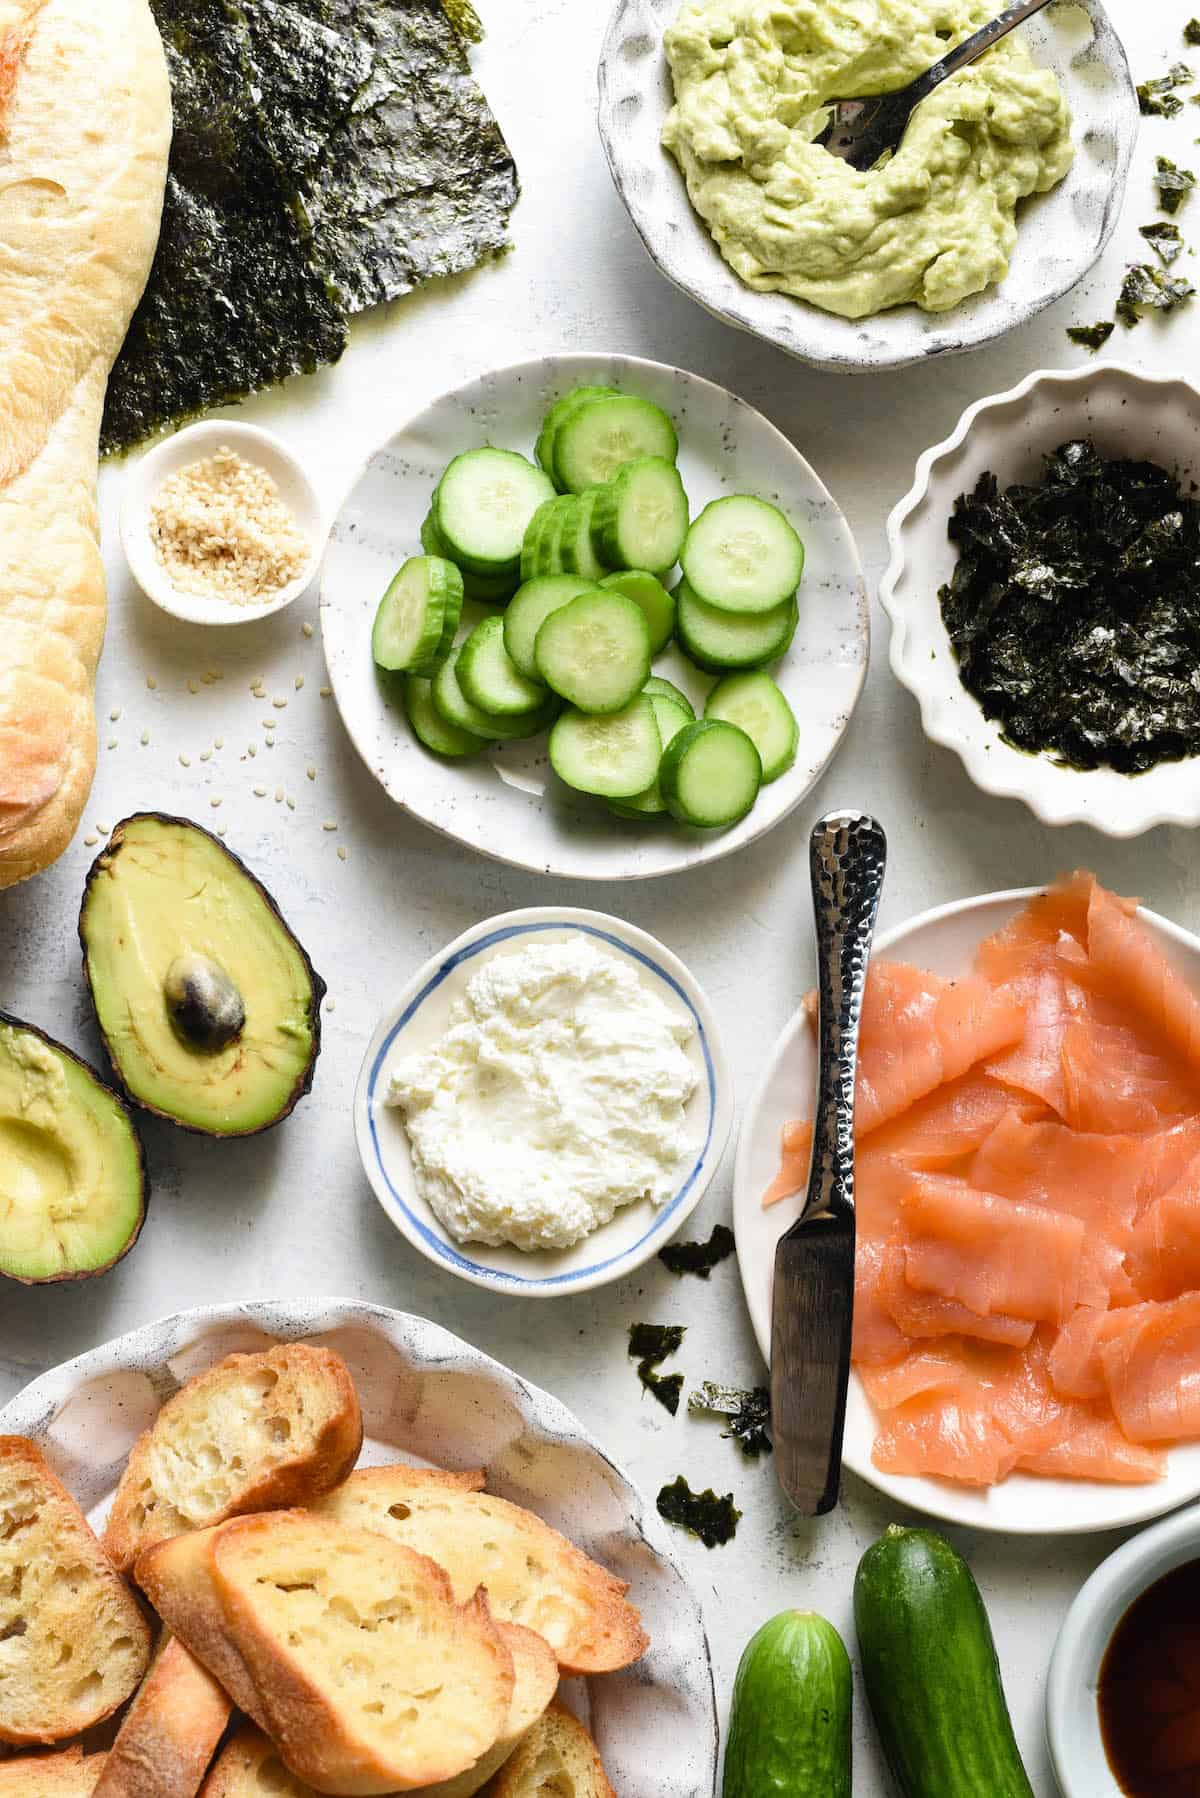 Ingredients for salmon bruschetta arranged in small bowls on white tabletop. Avocado spread, sliced cucumber, seaweed, smoked salmon, cream cheese, sesame seeds, sliced baguette.